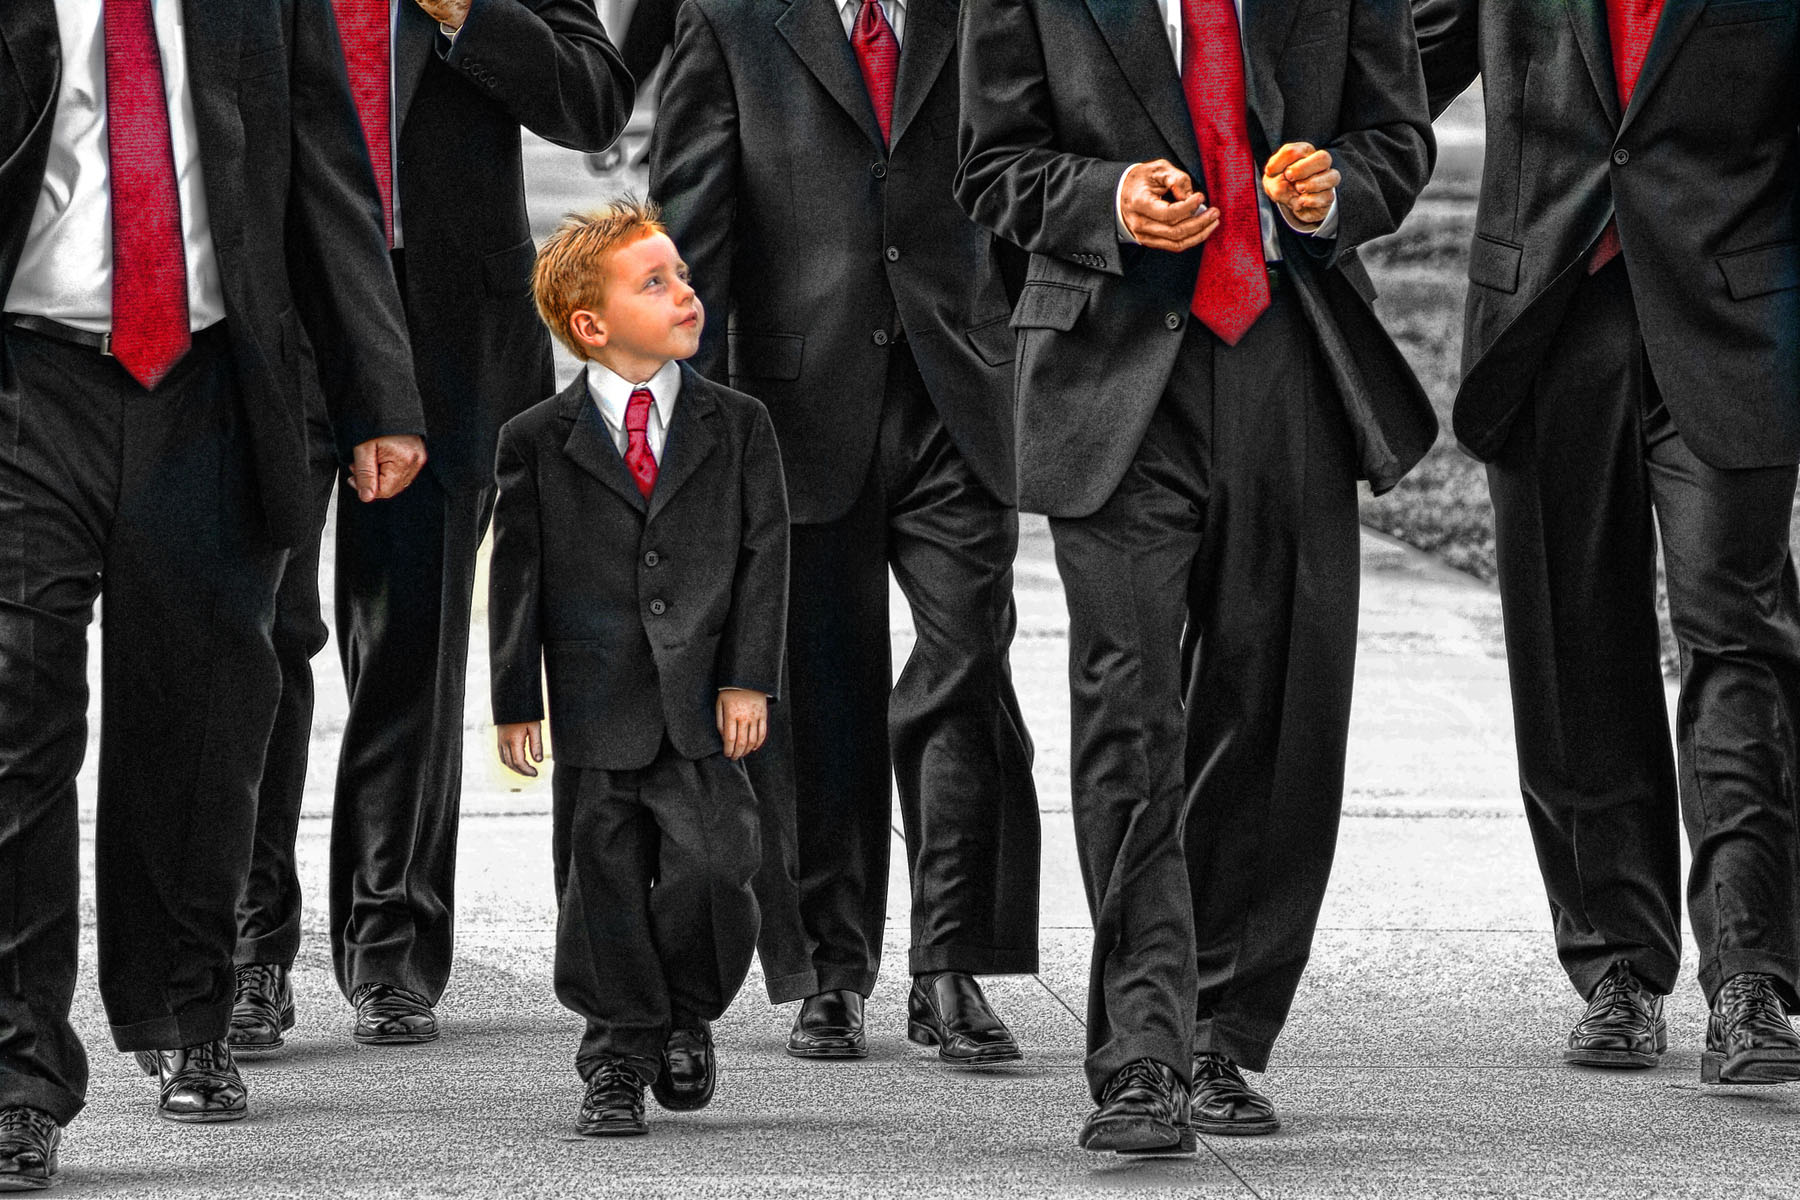 Ring Bearer with the Groomsmen